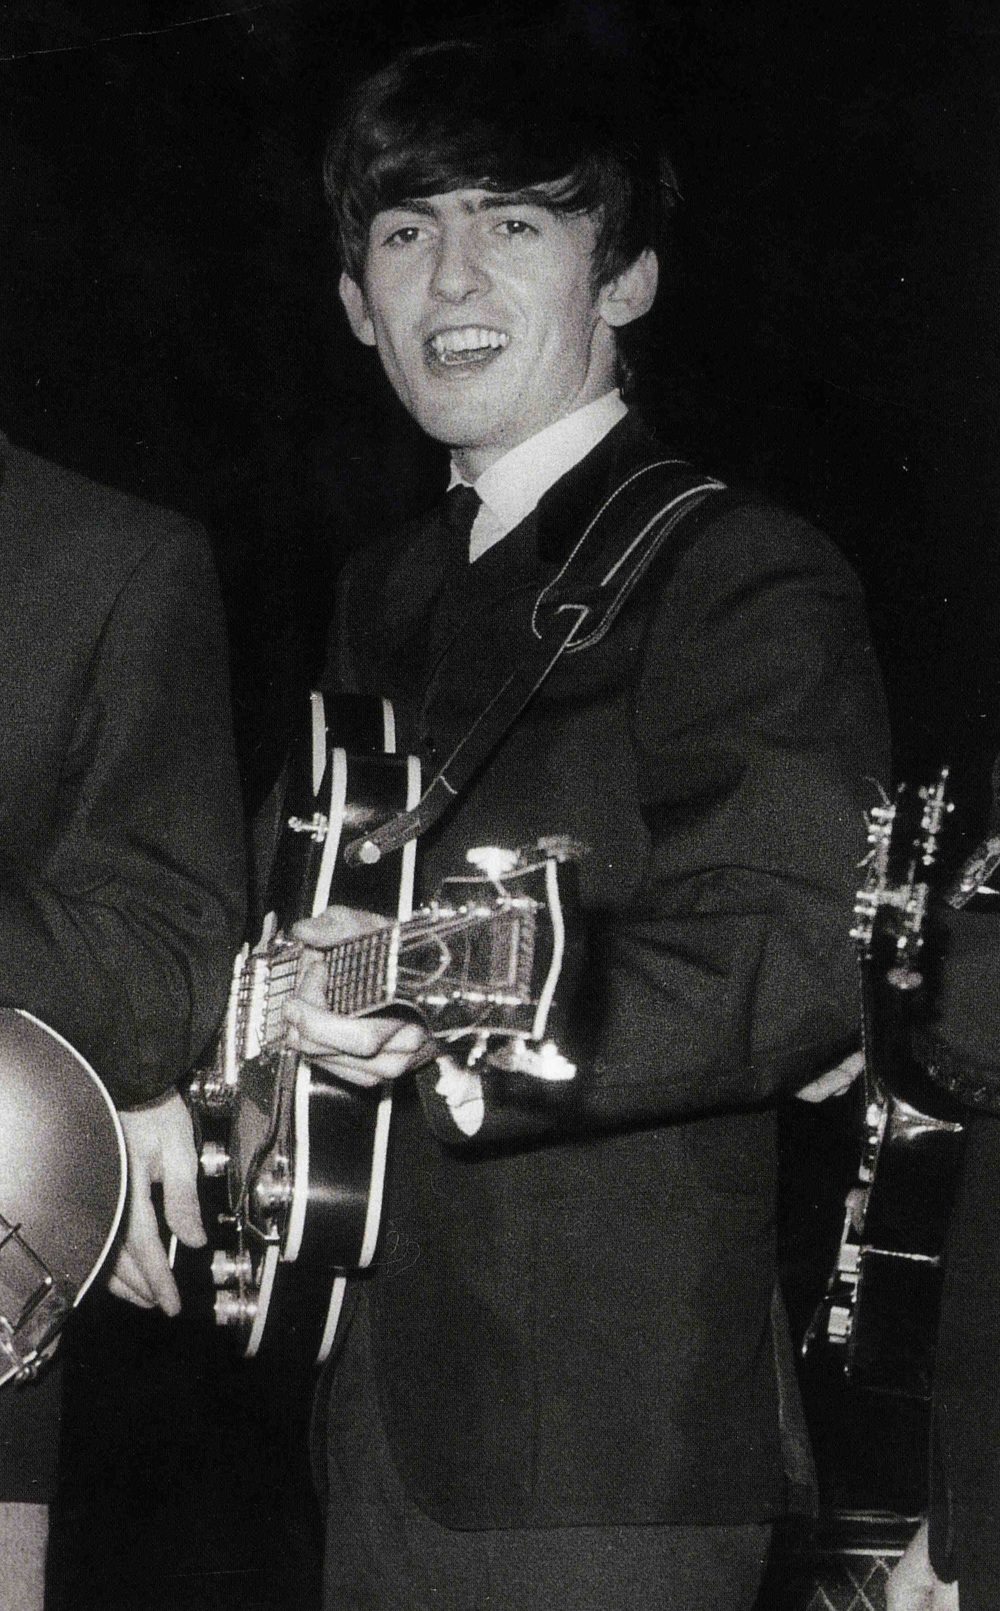 George Harrison photographed during the Beatles' UK tour of 1963.